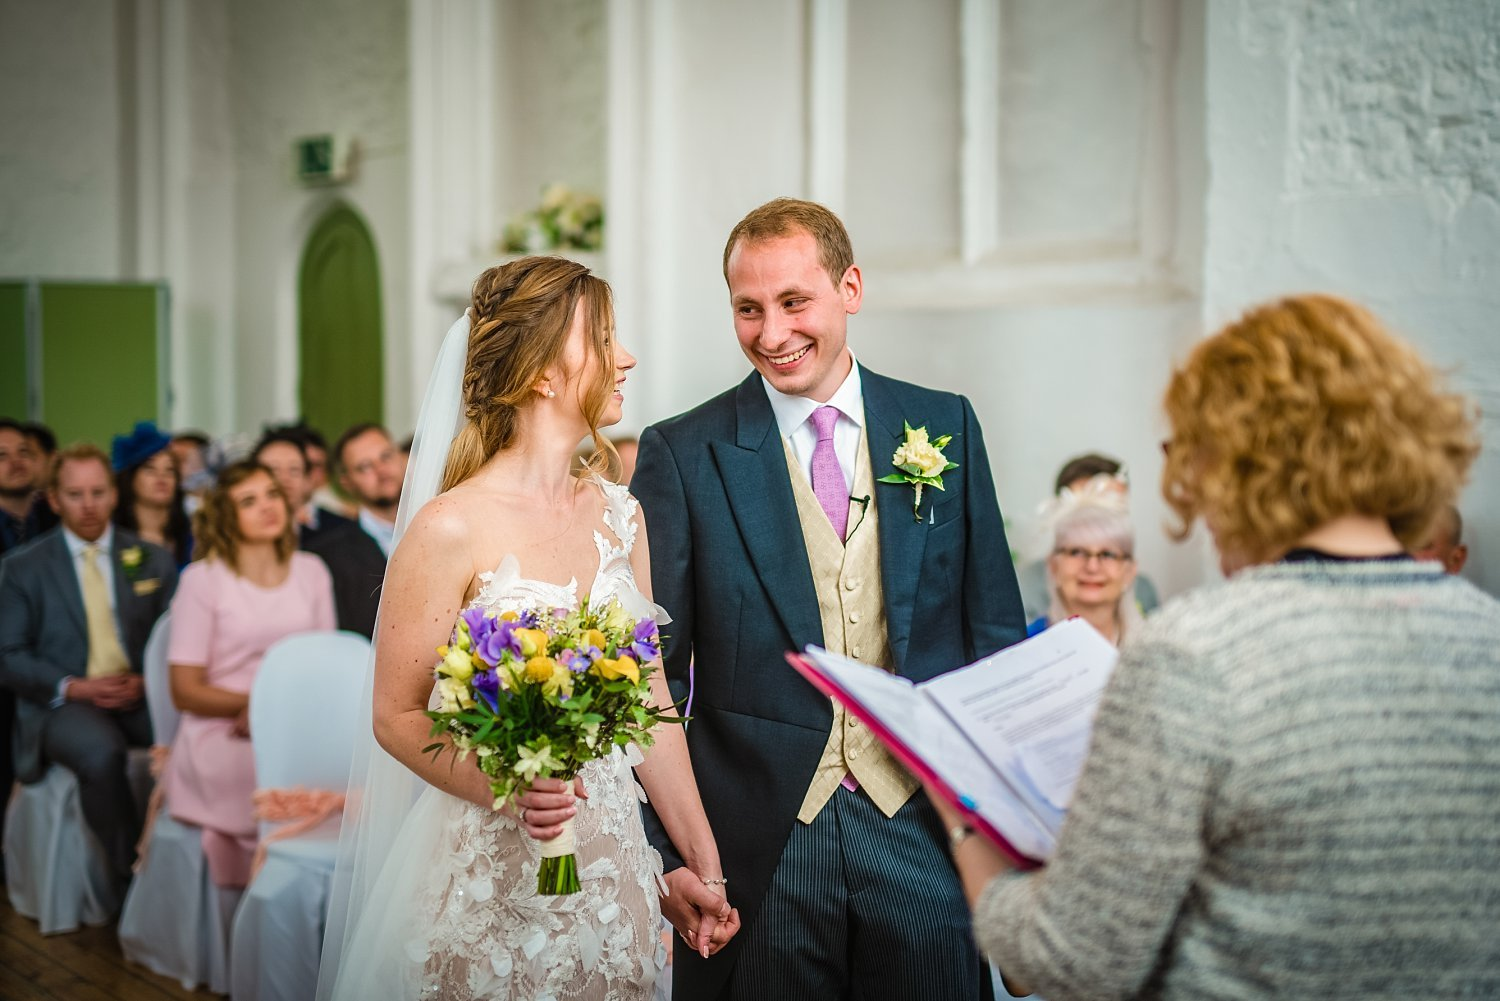 Fun-Filled wedding in Pembroke Lodge - groom is smiling. he is holding bride's hand